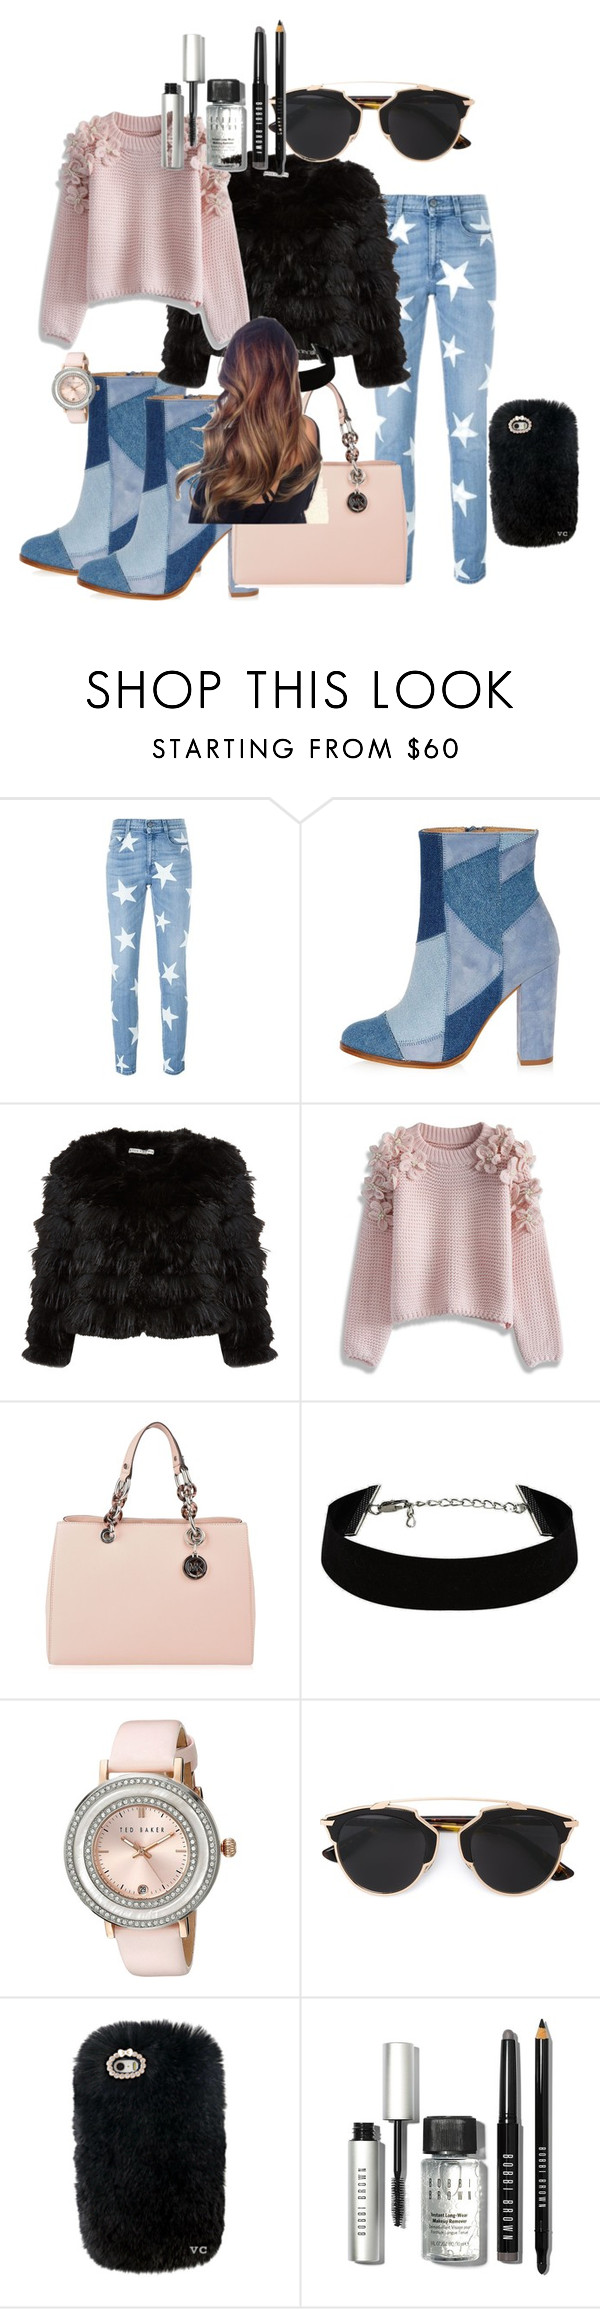 """Cool boots"" by dzenita-219 on Polyvore featuring STELLA McCARTNEY, River Island, Alice + Olivia, Chicwish, MICHAEL Michael Kors, Ted Baker, Christian Dior, Bobbi Brown Cosmetics, women's clothing and women"